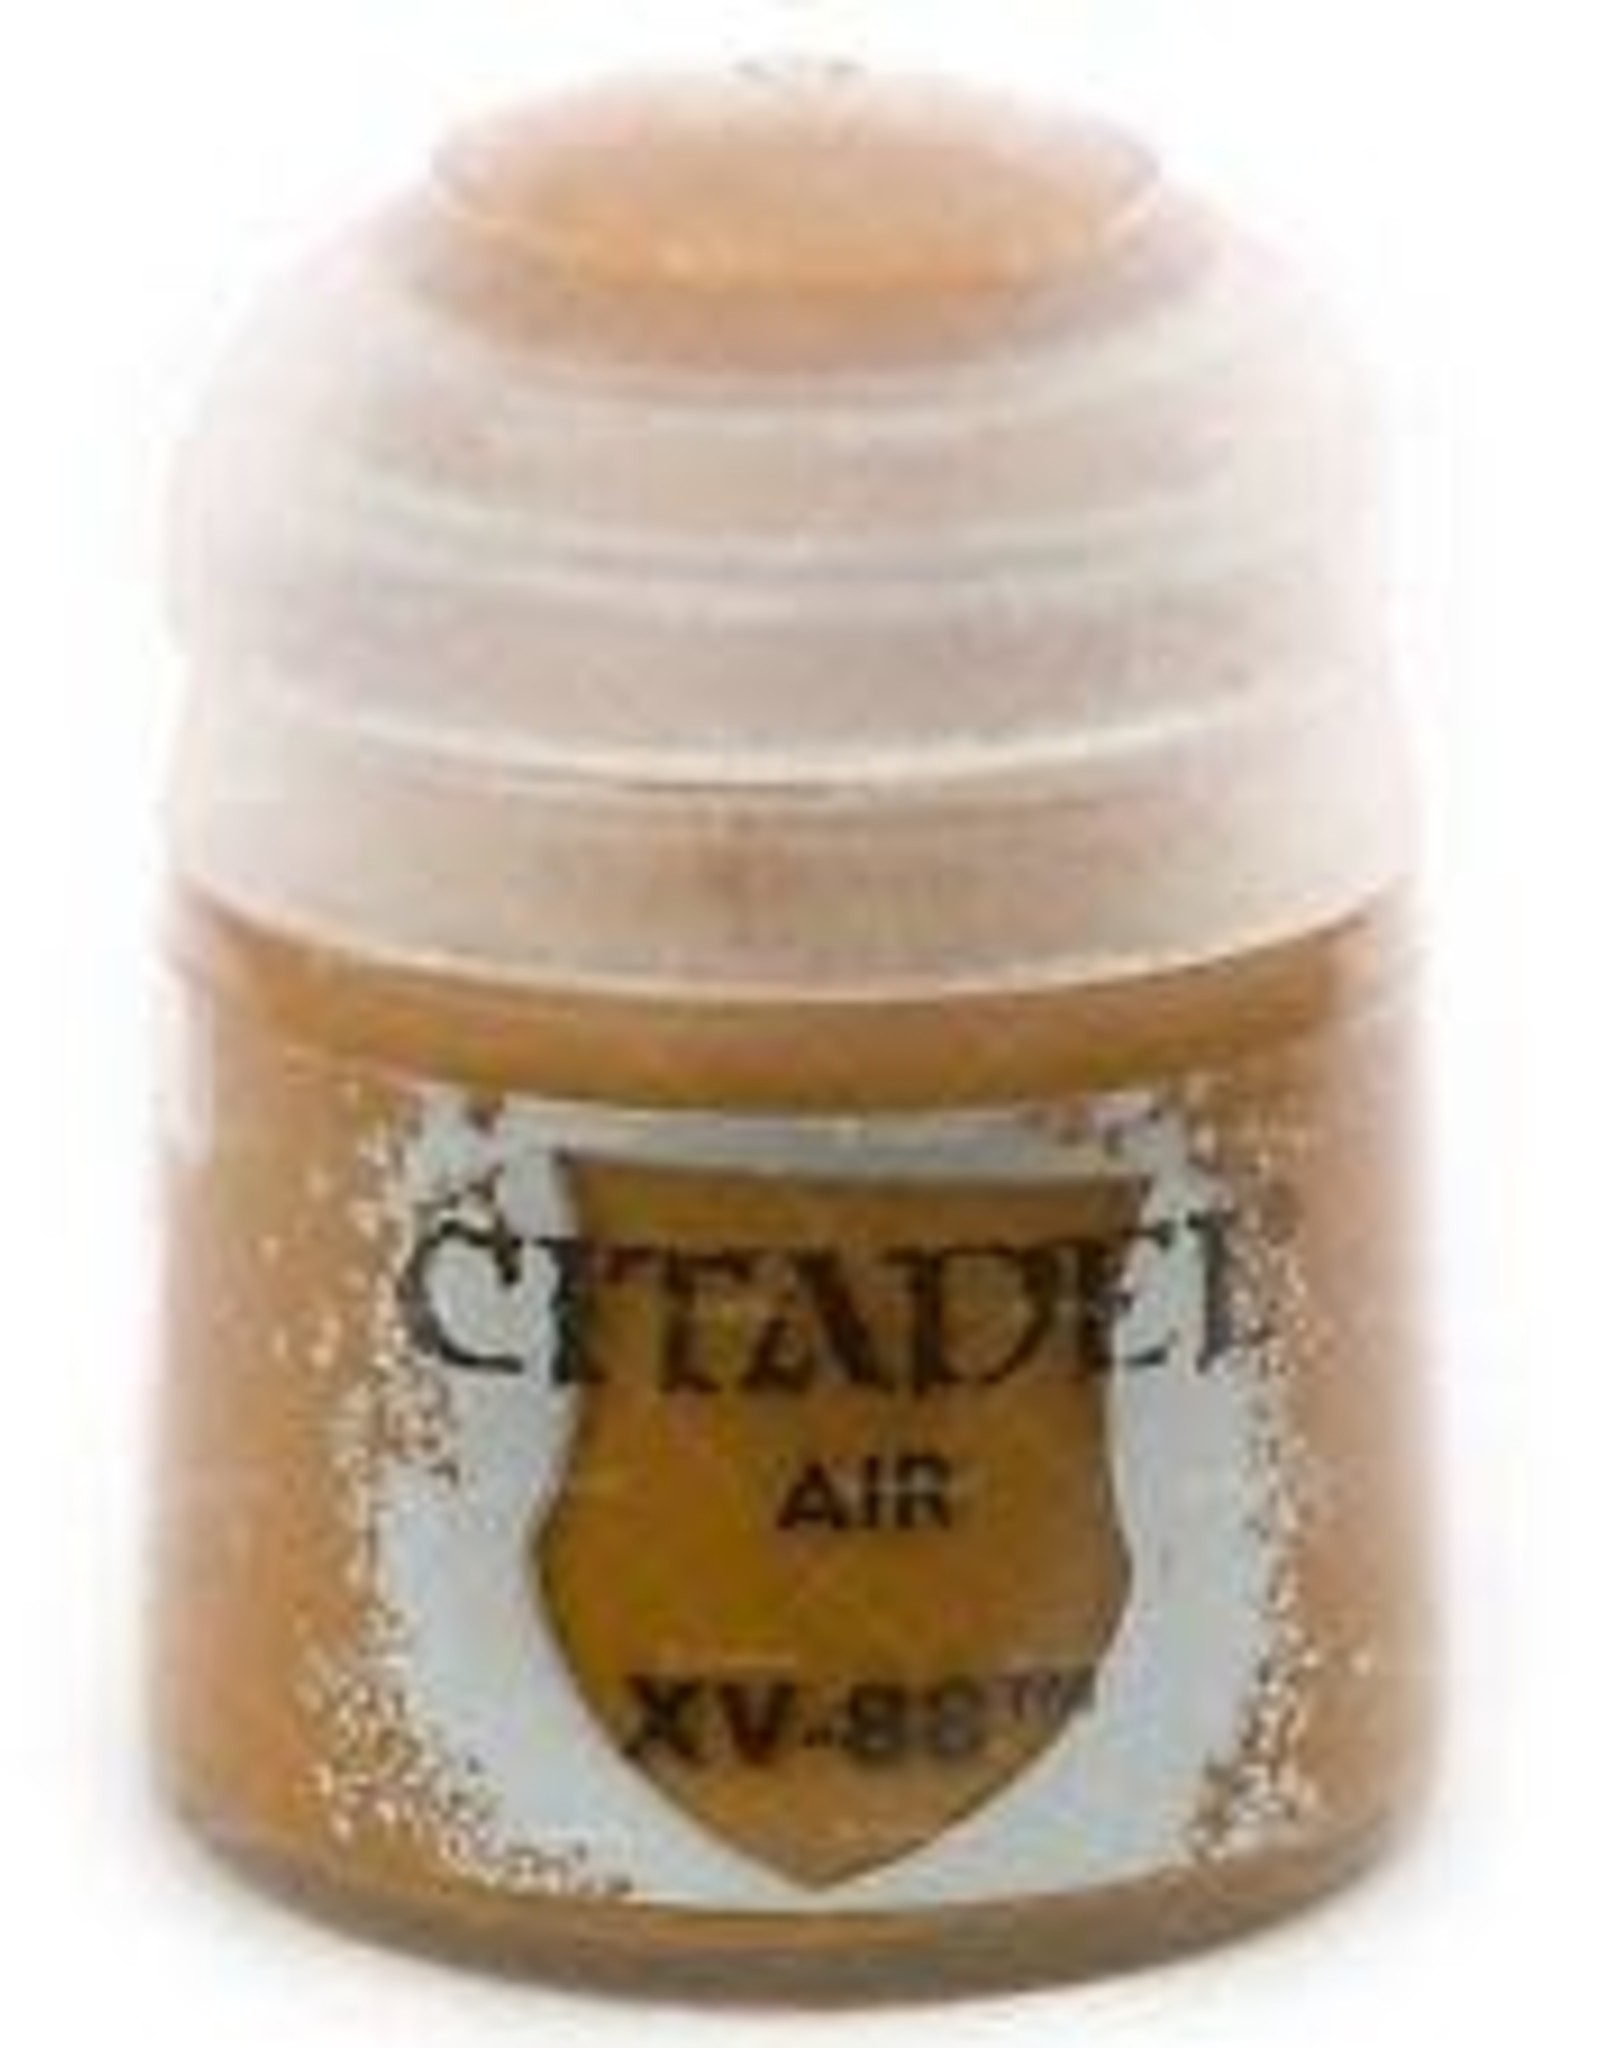 Citadel Paint Air: XV-88